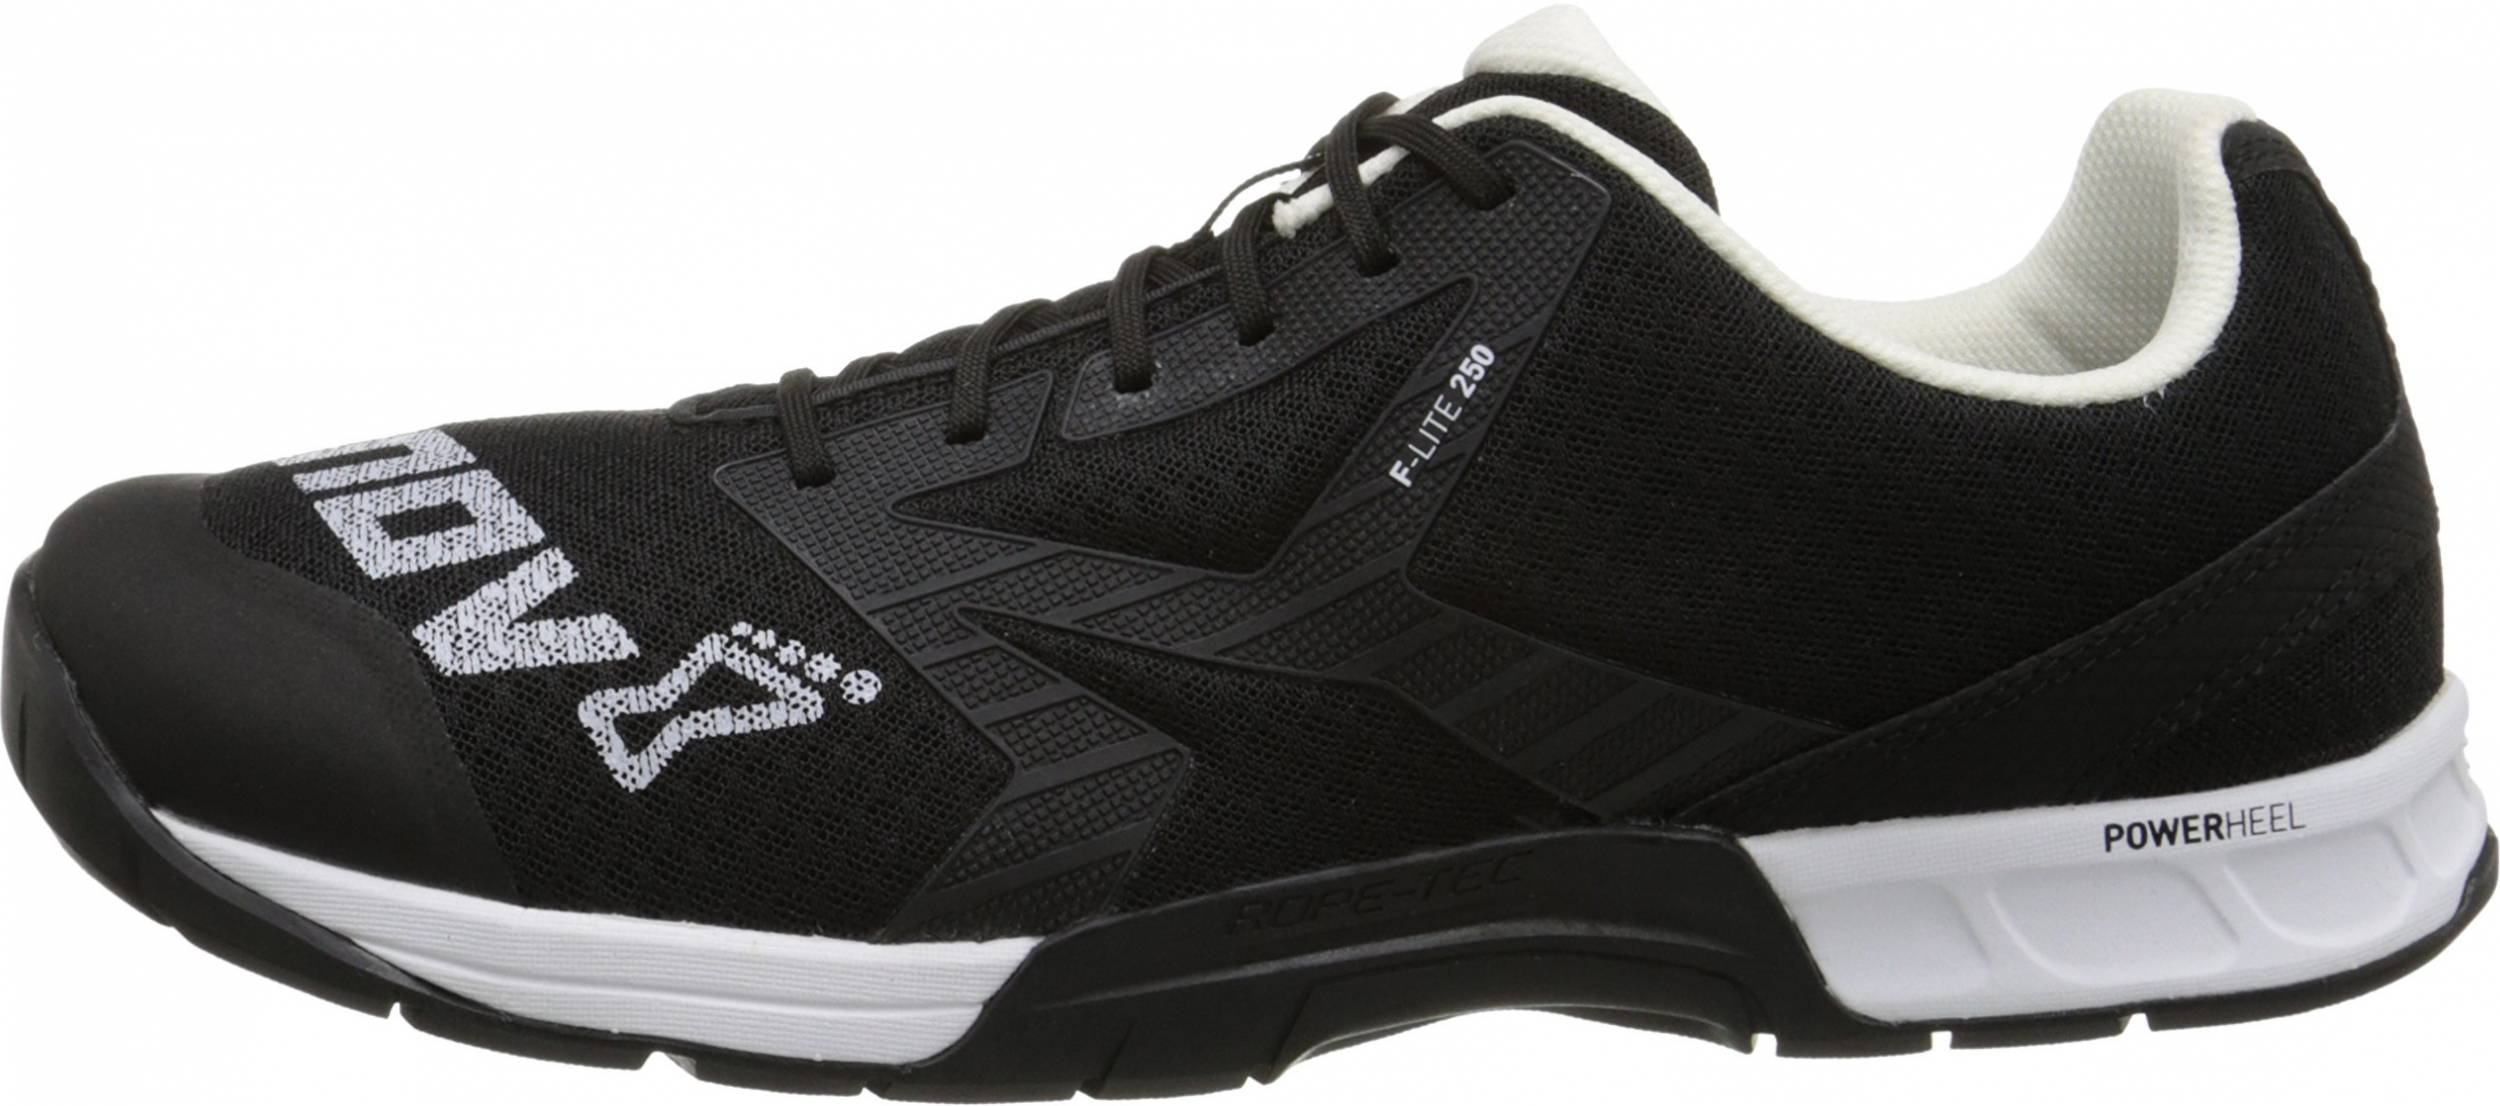 Only $40 + Review of Inov-8 F-Lite 250